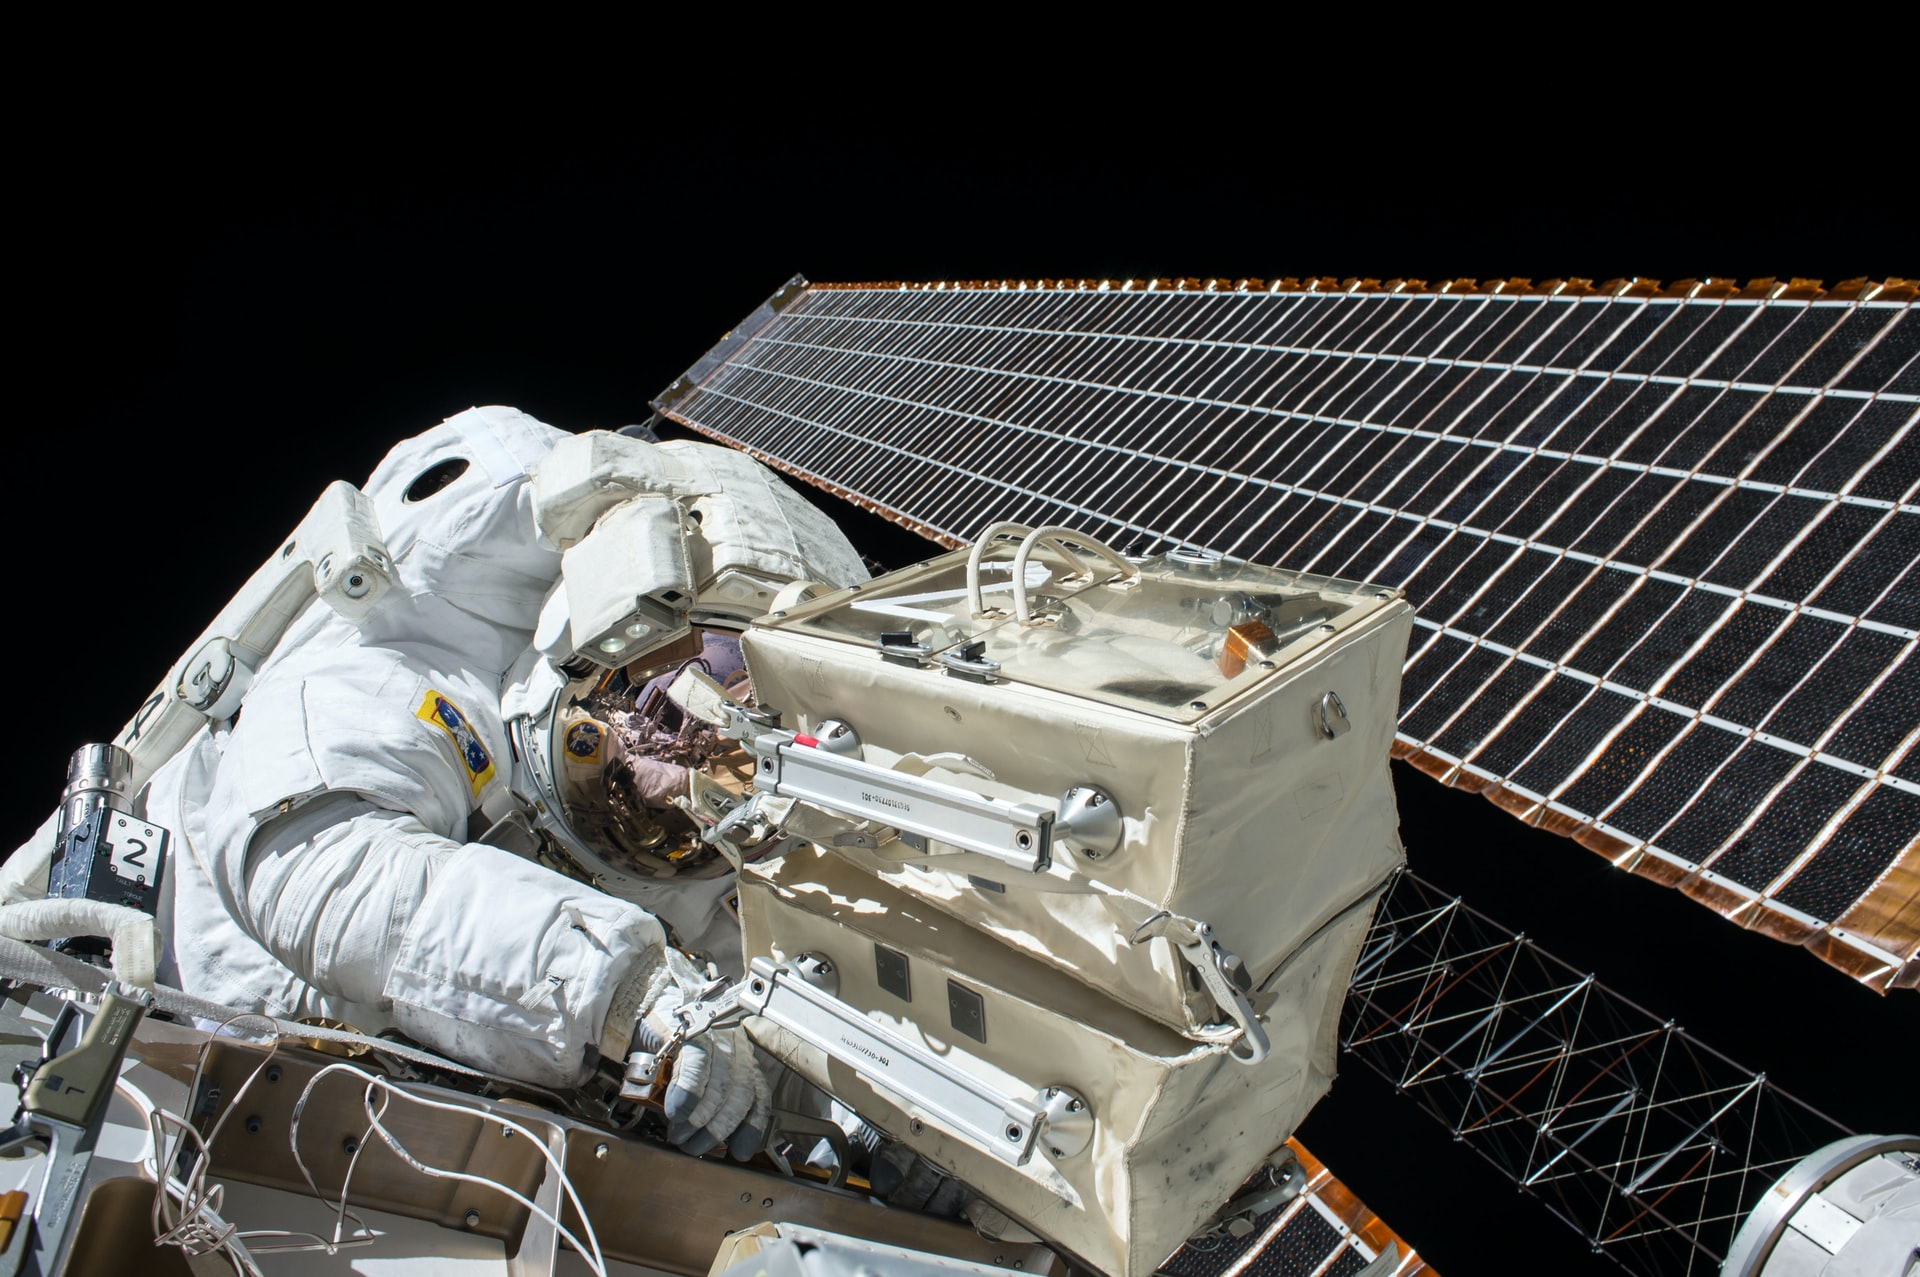 An astronaut is shown working outside of the International Space Station.